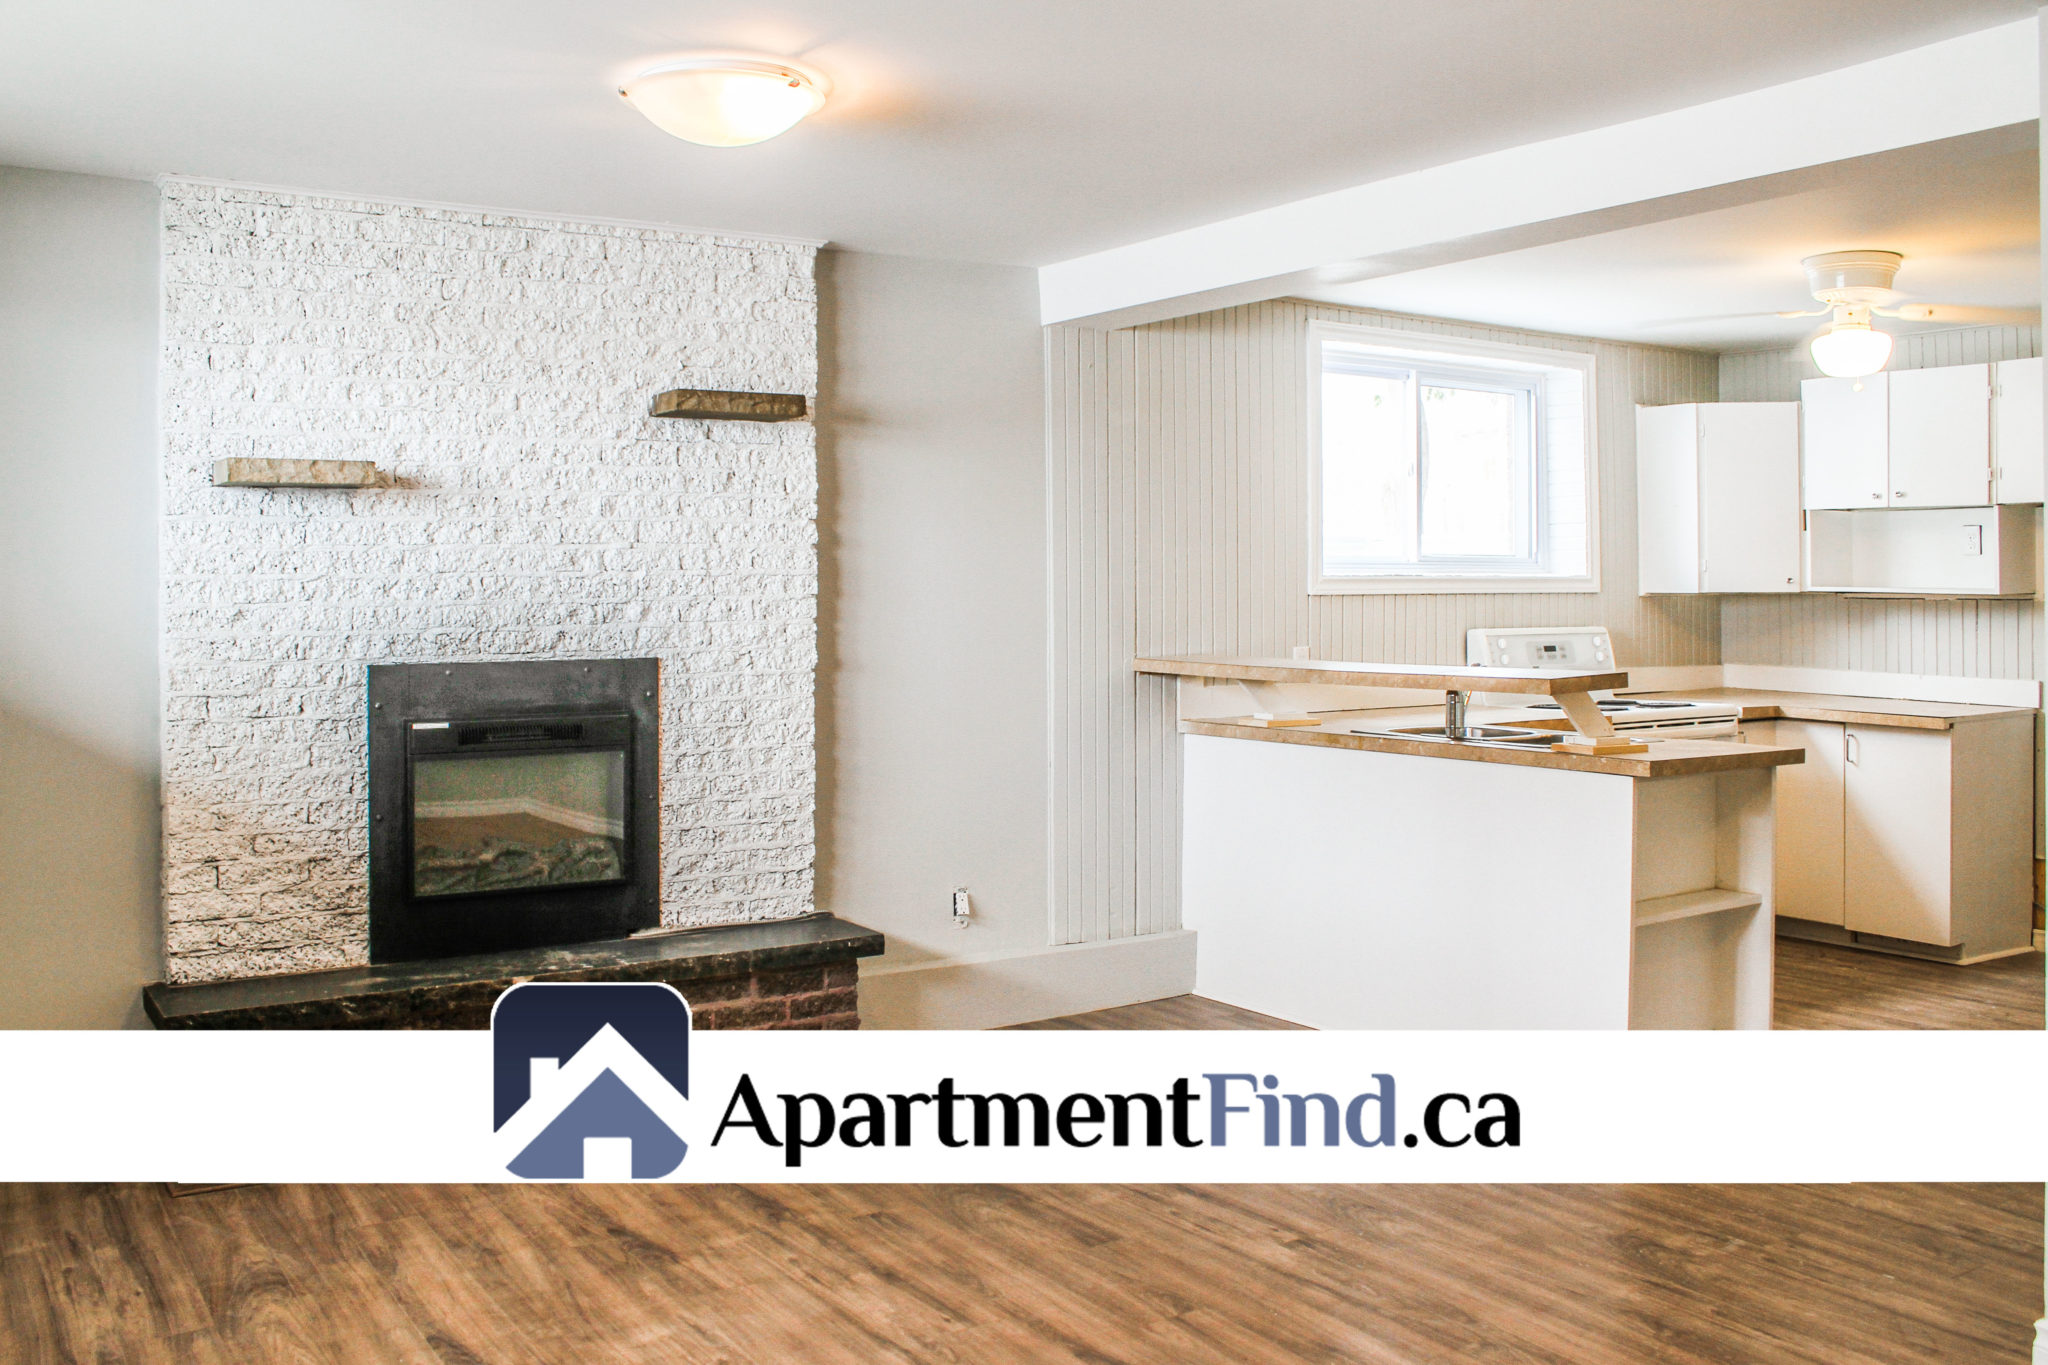 Appartement  Louer Gatineau  Apartment Find